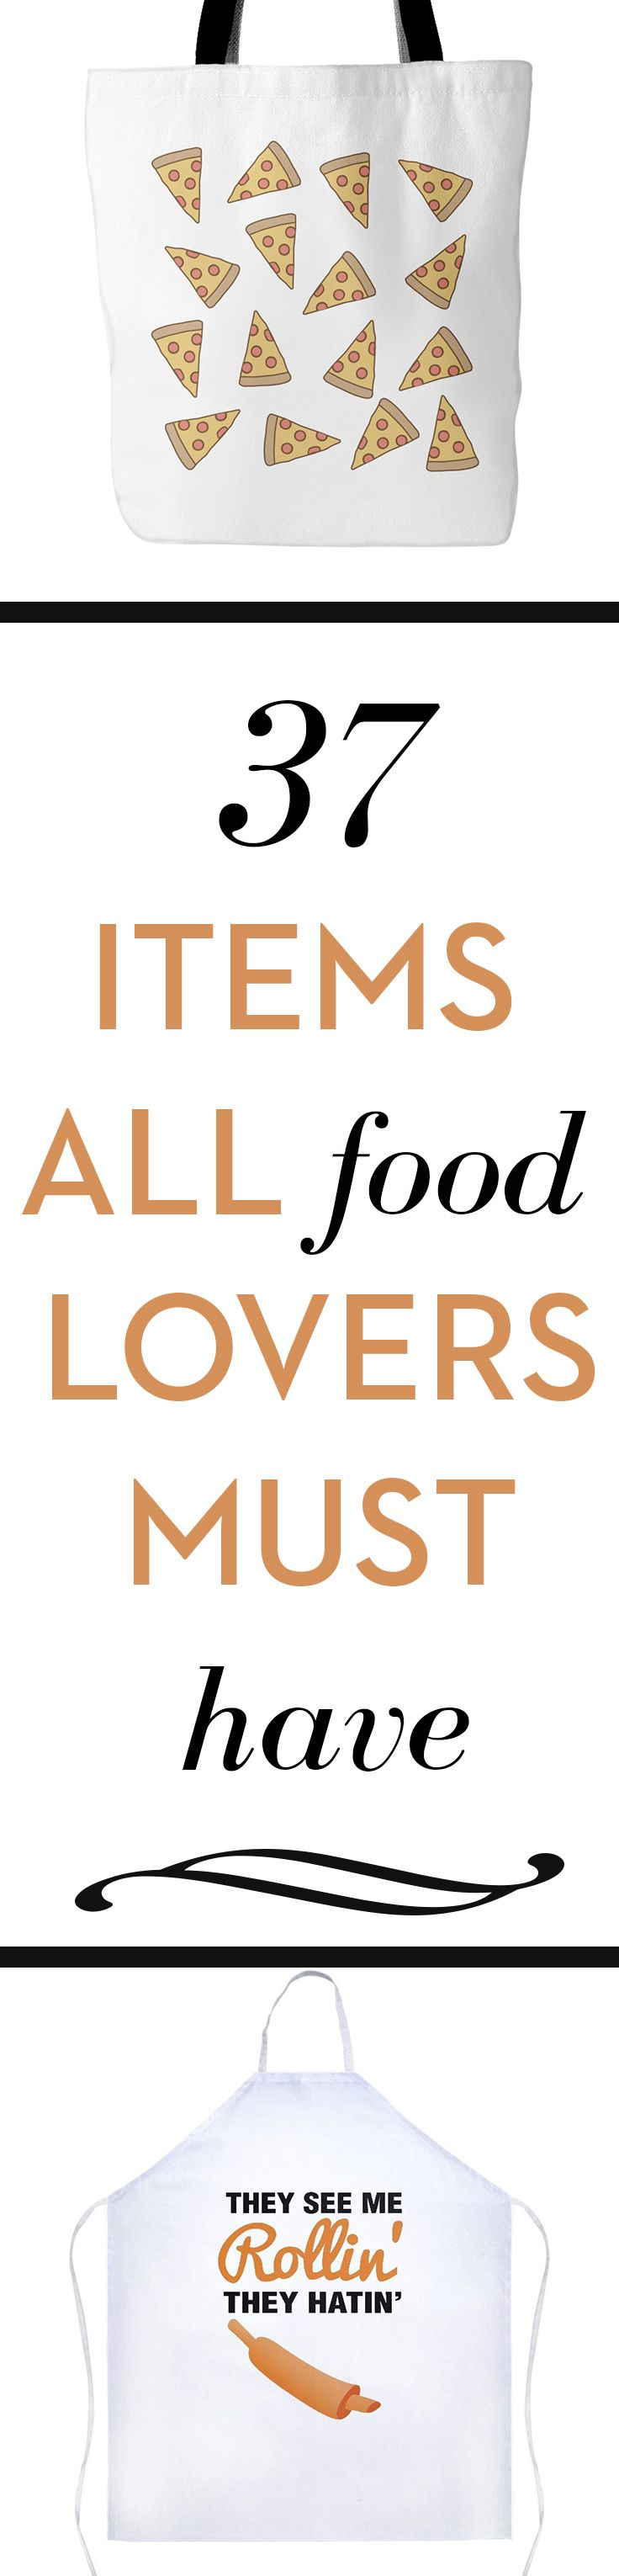 824 best gadgets images on pinterest tech gadgets a kiss and are you hungry 37 items all food lovers must have fandeluxe Image collections